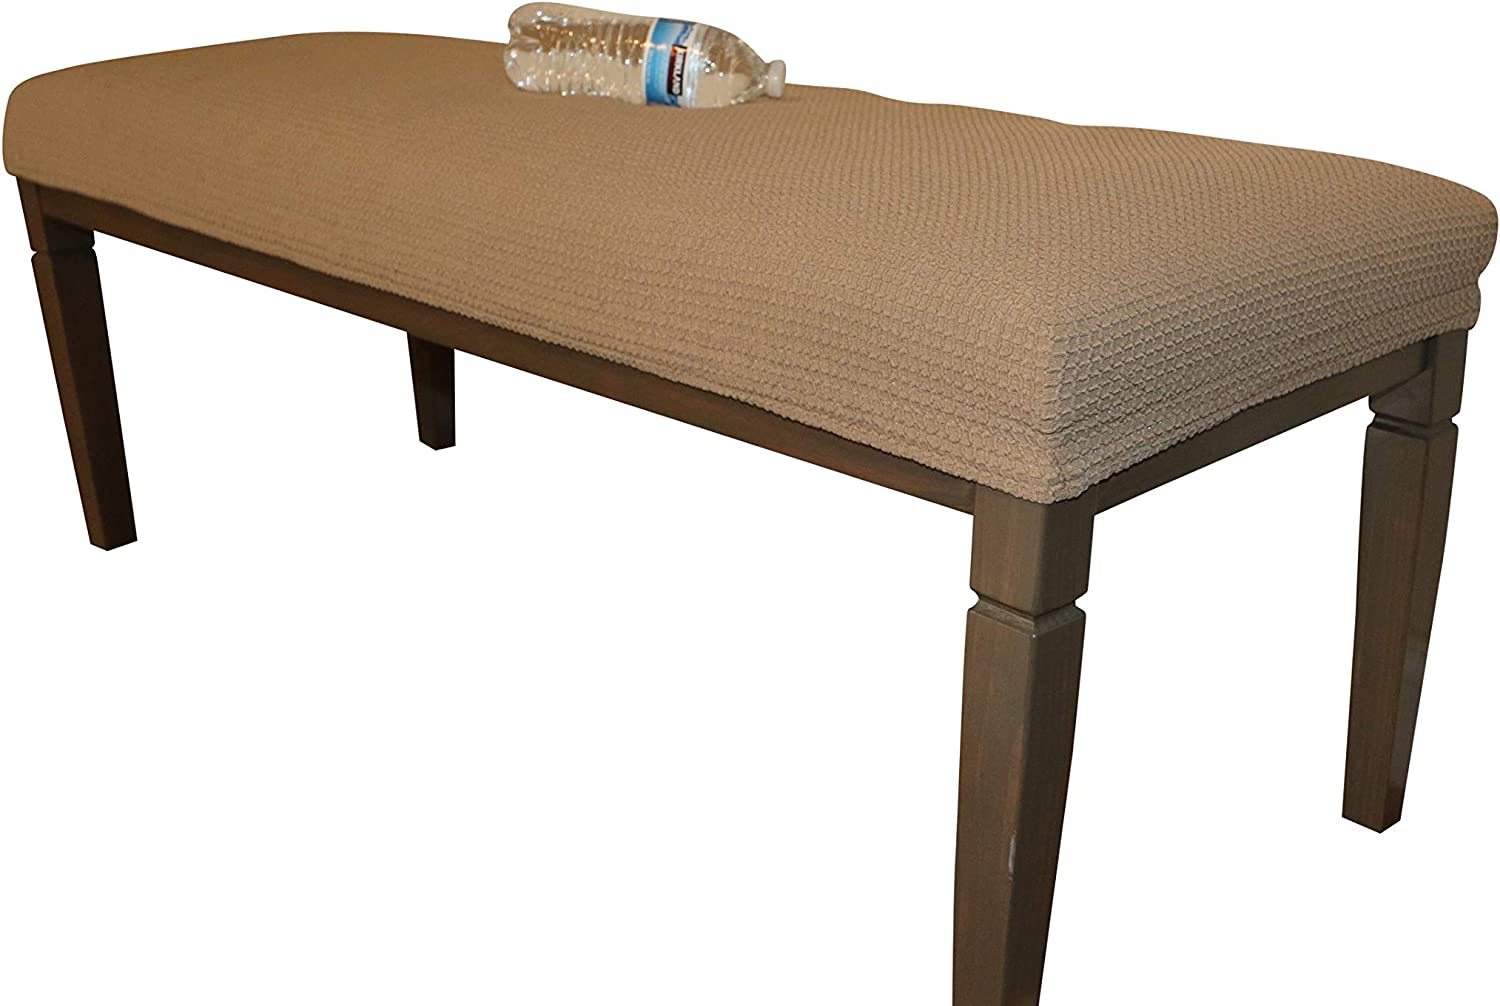 Waterproof Dining Bench Cover Protector - Perfect for Kids, Elderly, Restaurant,Clinics, Home - Machine Washable, Stretchy, Snugly Fit, Premium Quality, Clean The Mess Easily (49x17, Medium Brown)